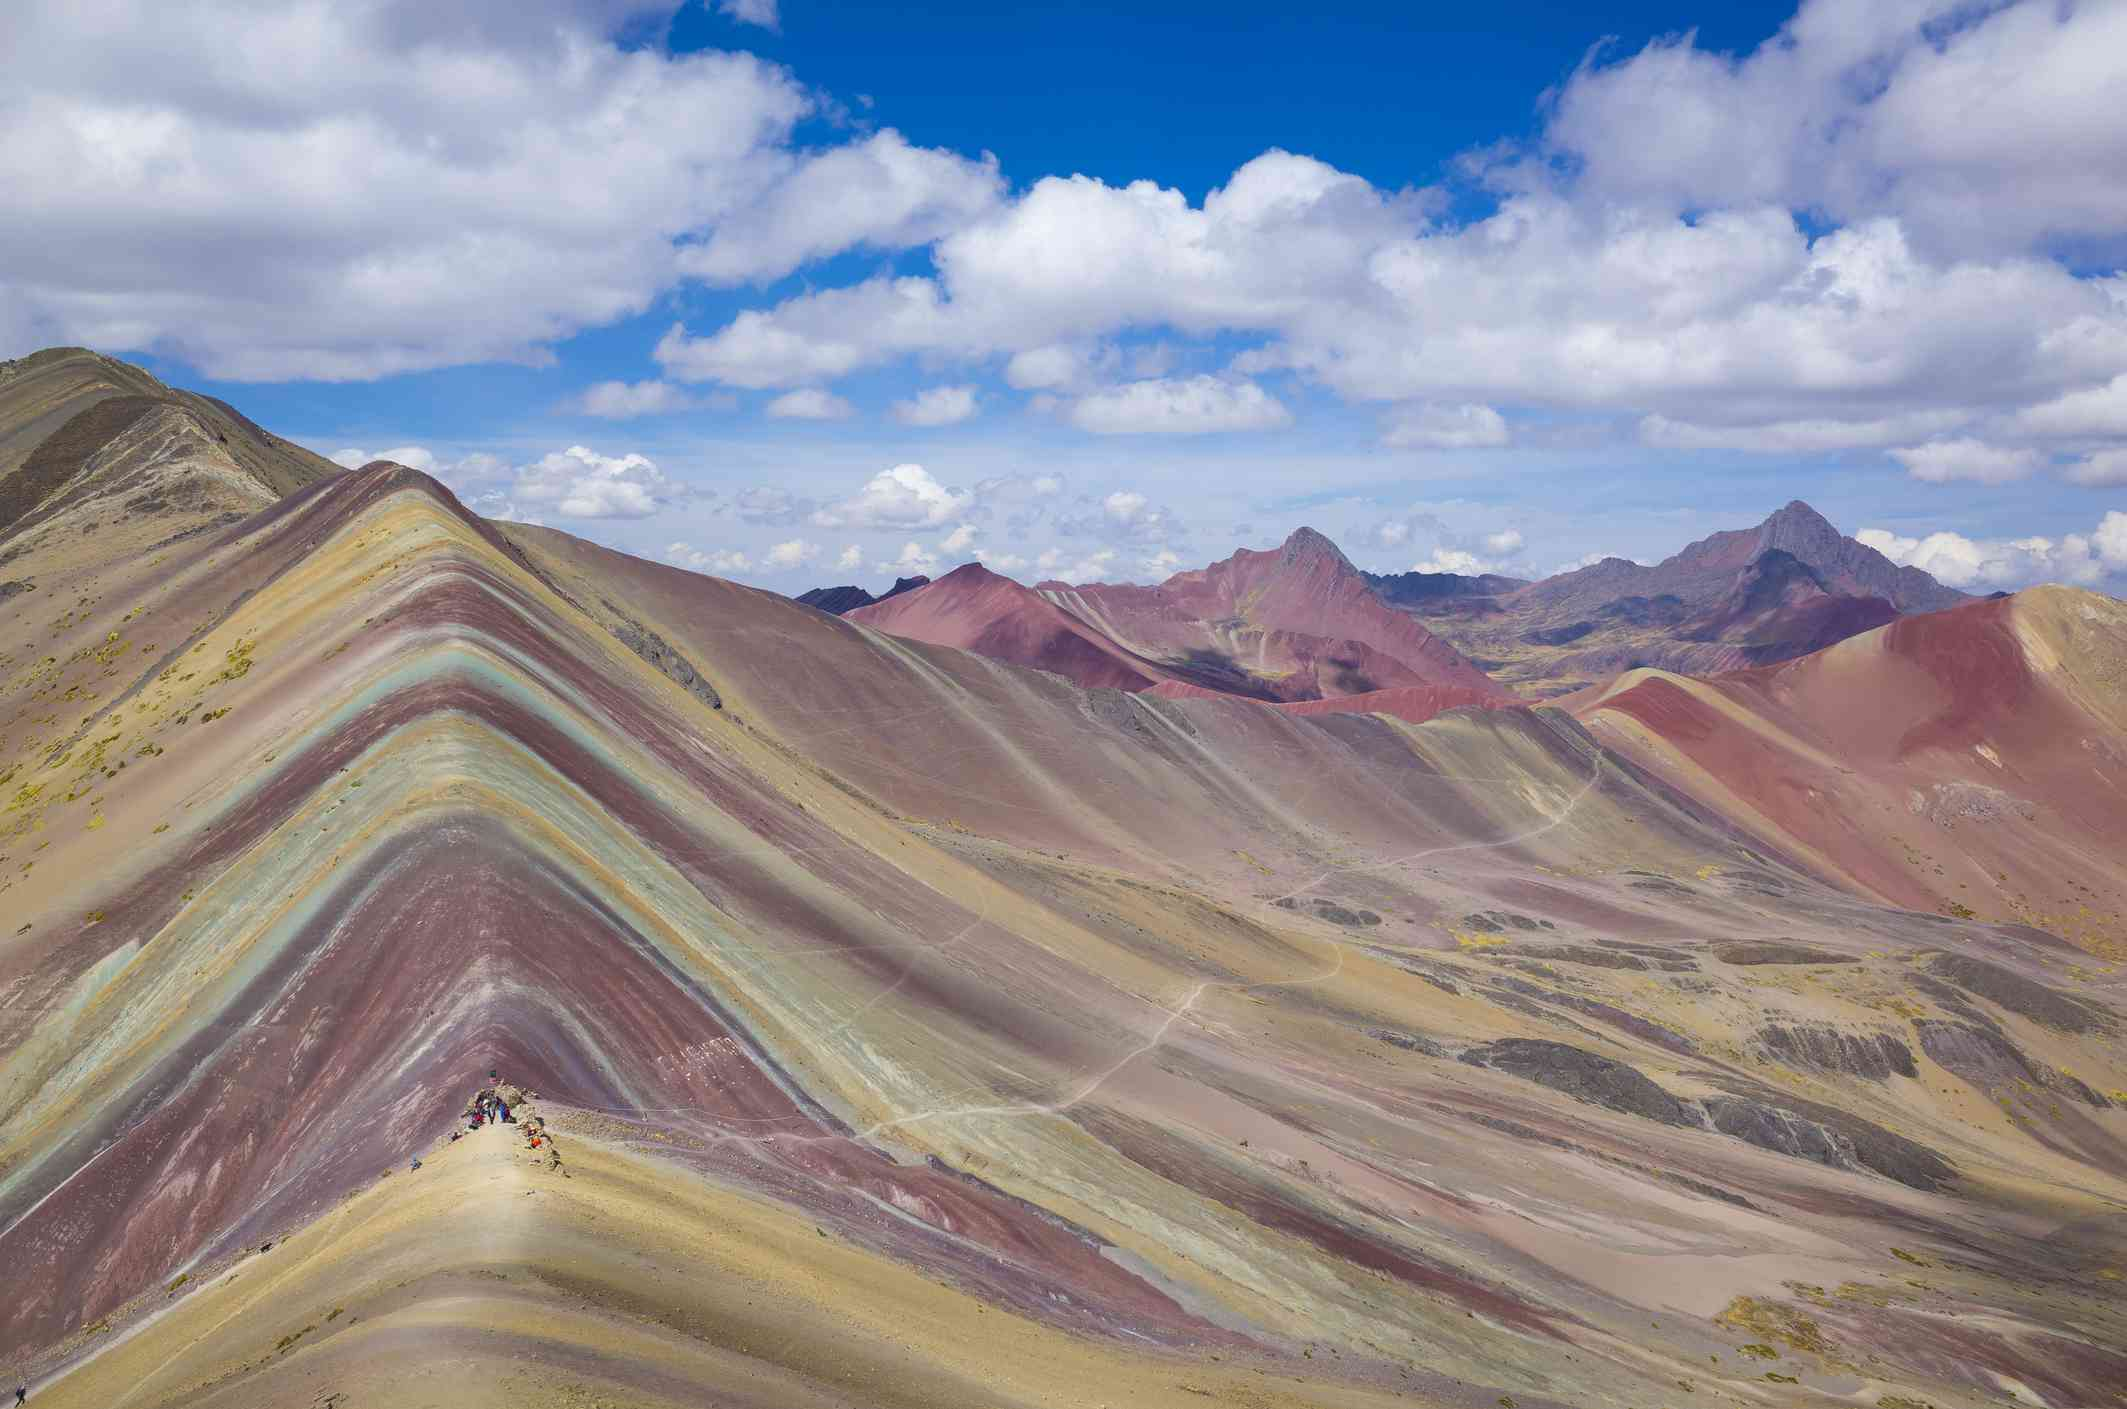 the Winicunca also known as Rainbow mountain